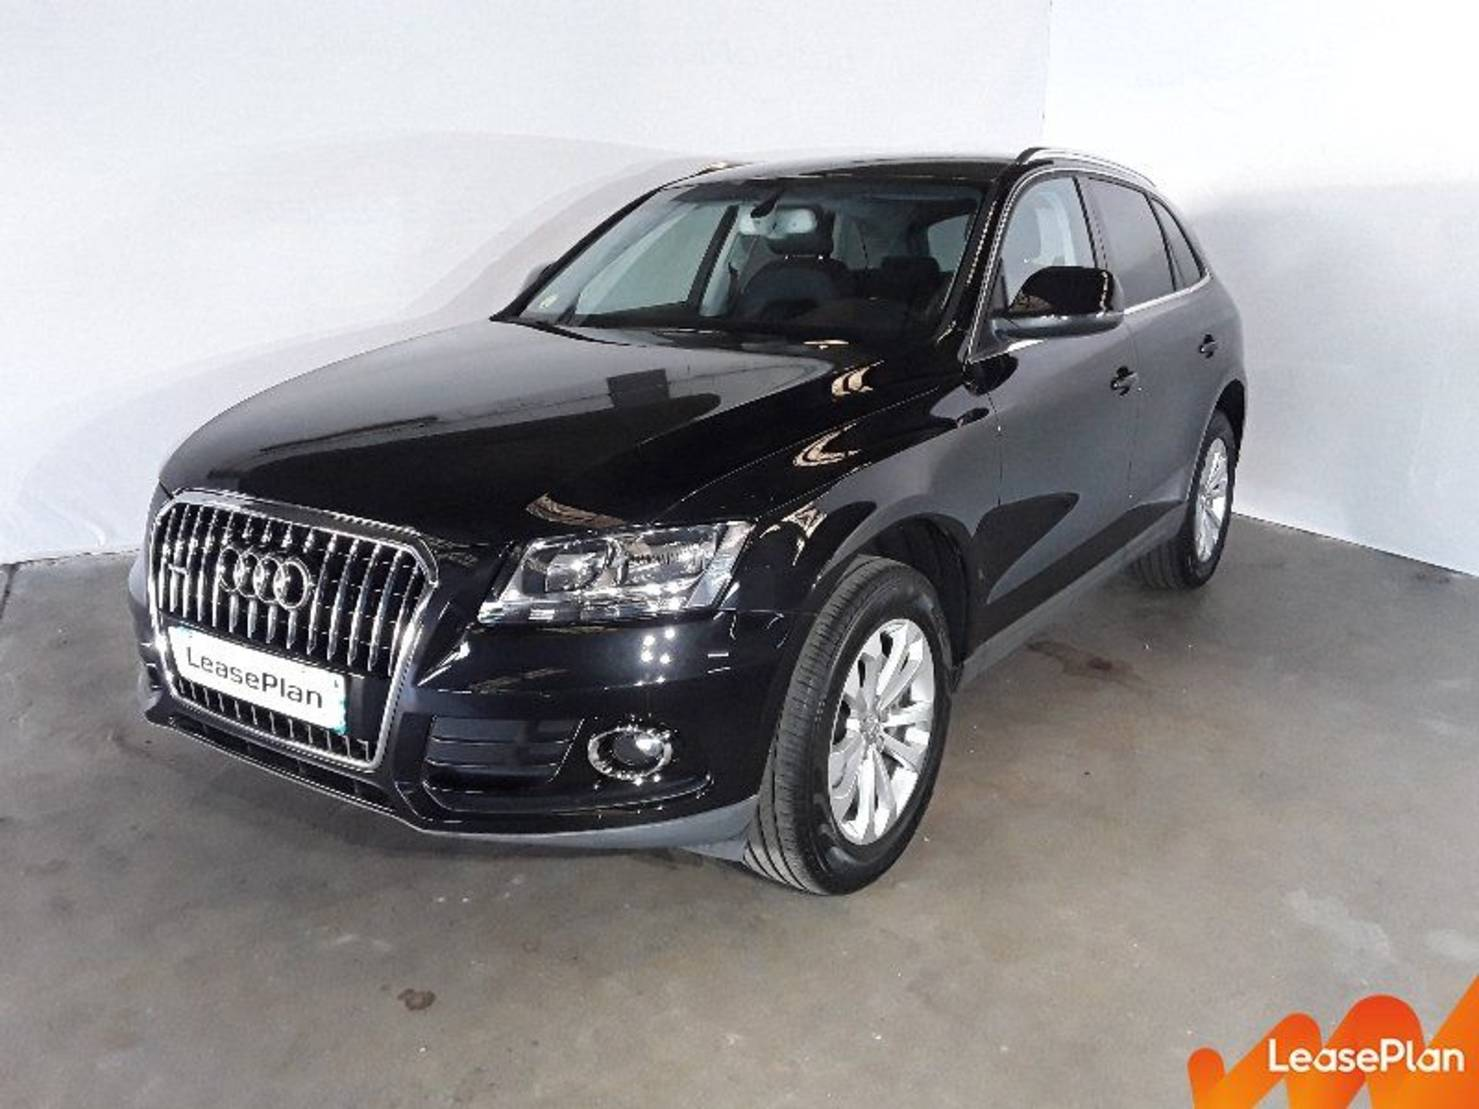 Audi Q5 2.0 TDI 177, Quattro Ambition Luxe S tronic 7 detail1